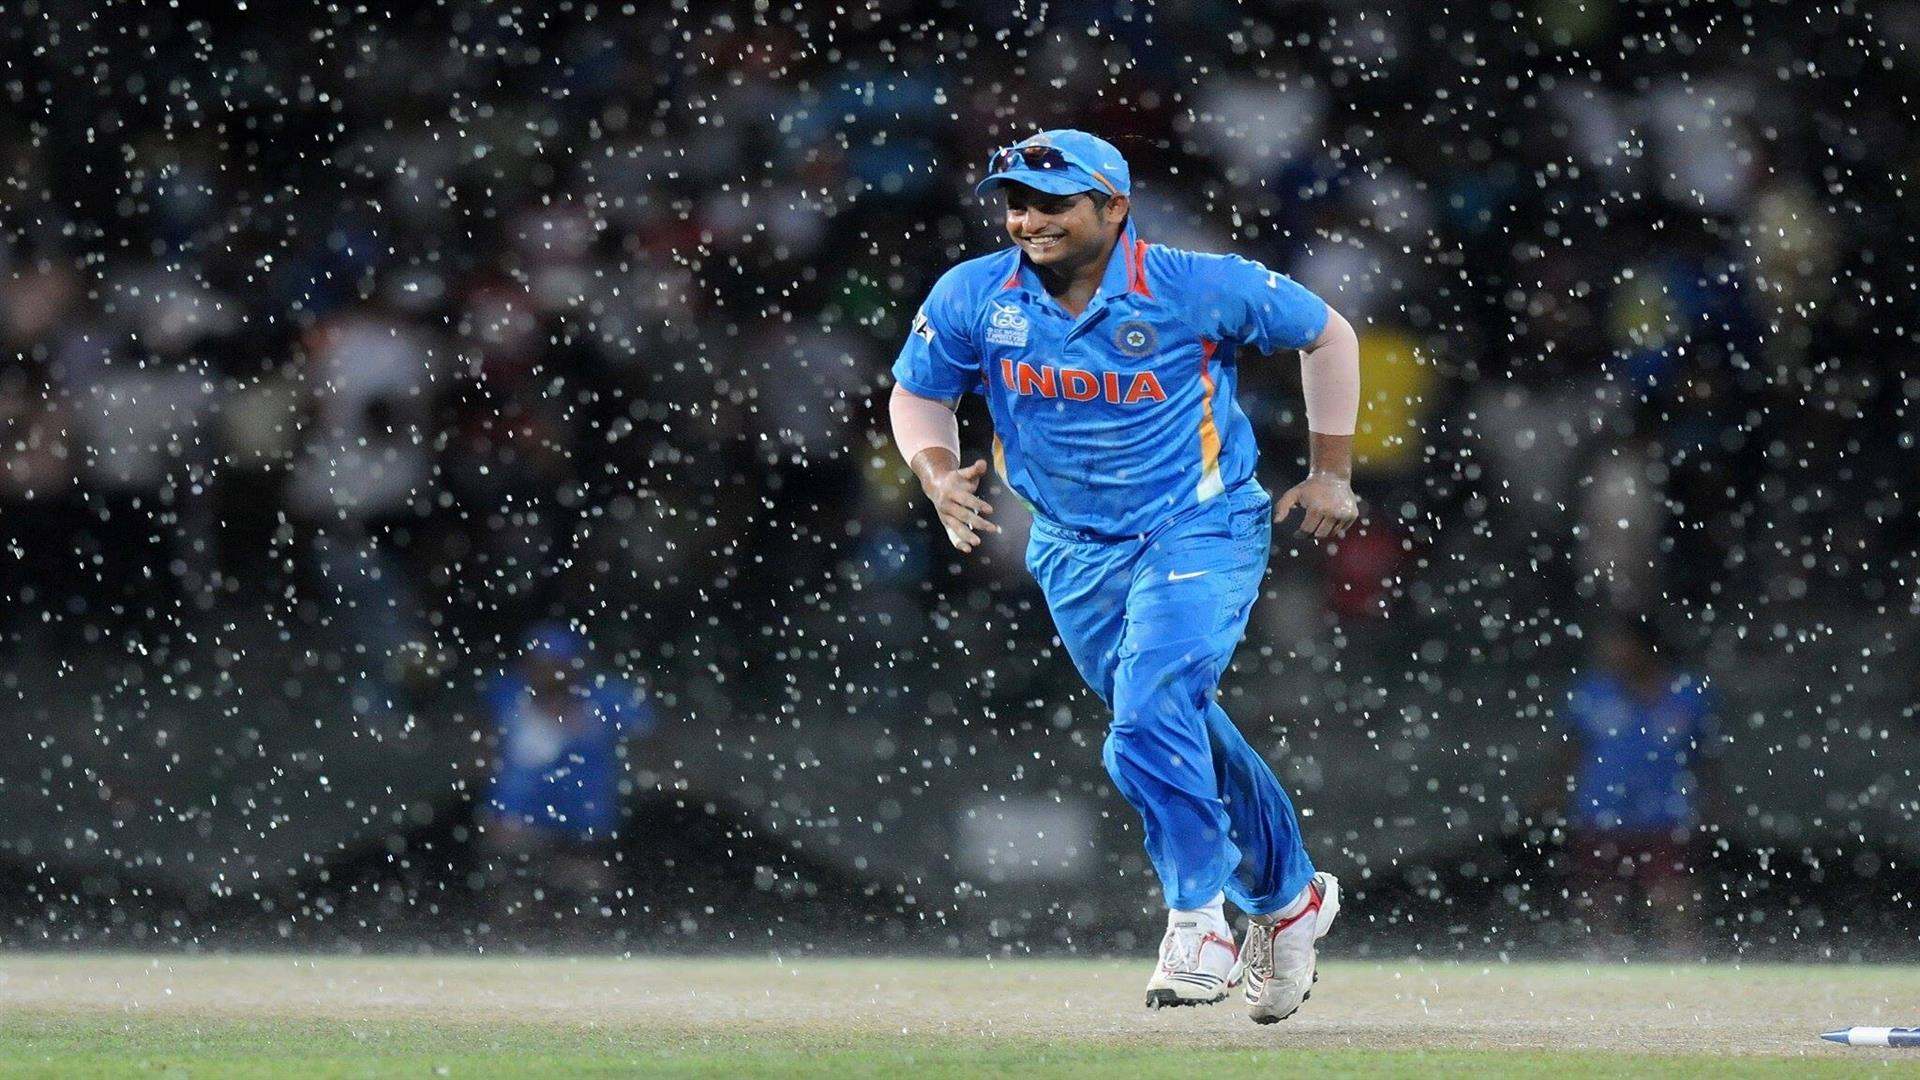 1920x1080 Suresh Raina Indian Batsman Criketer in Ground During Rain Wallpaper